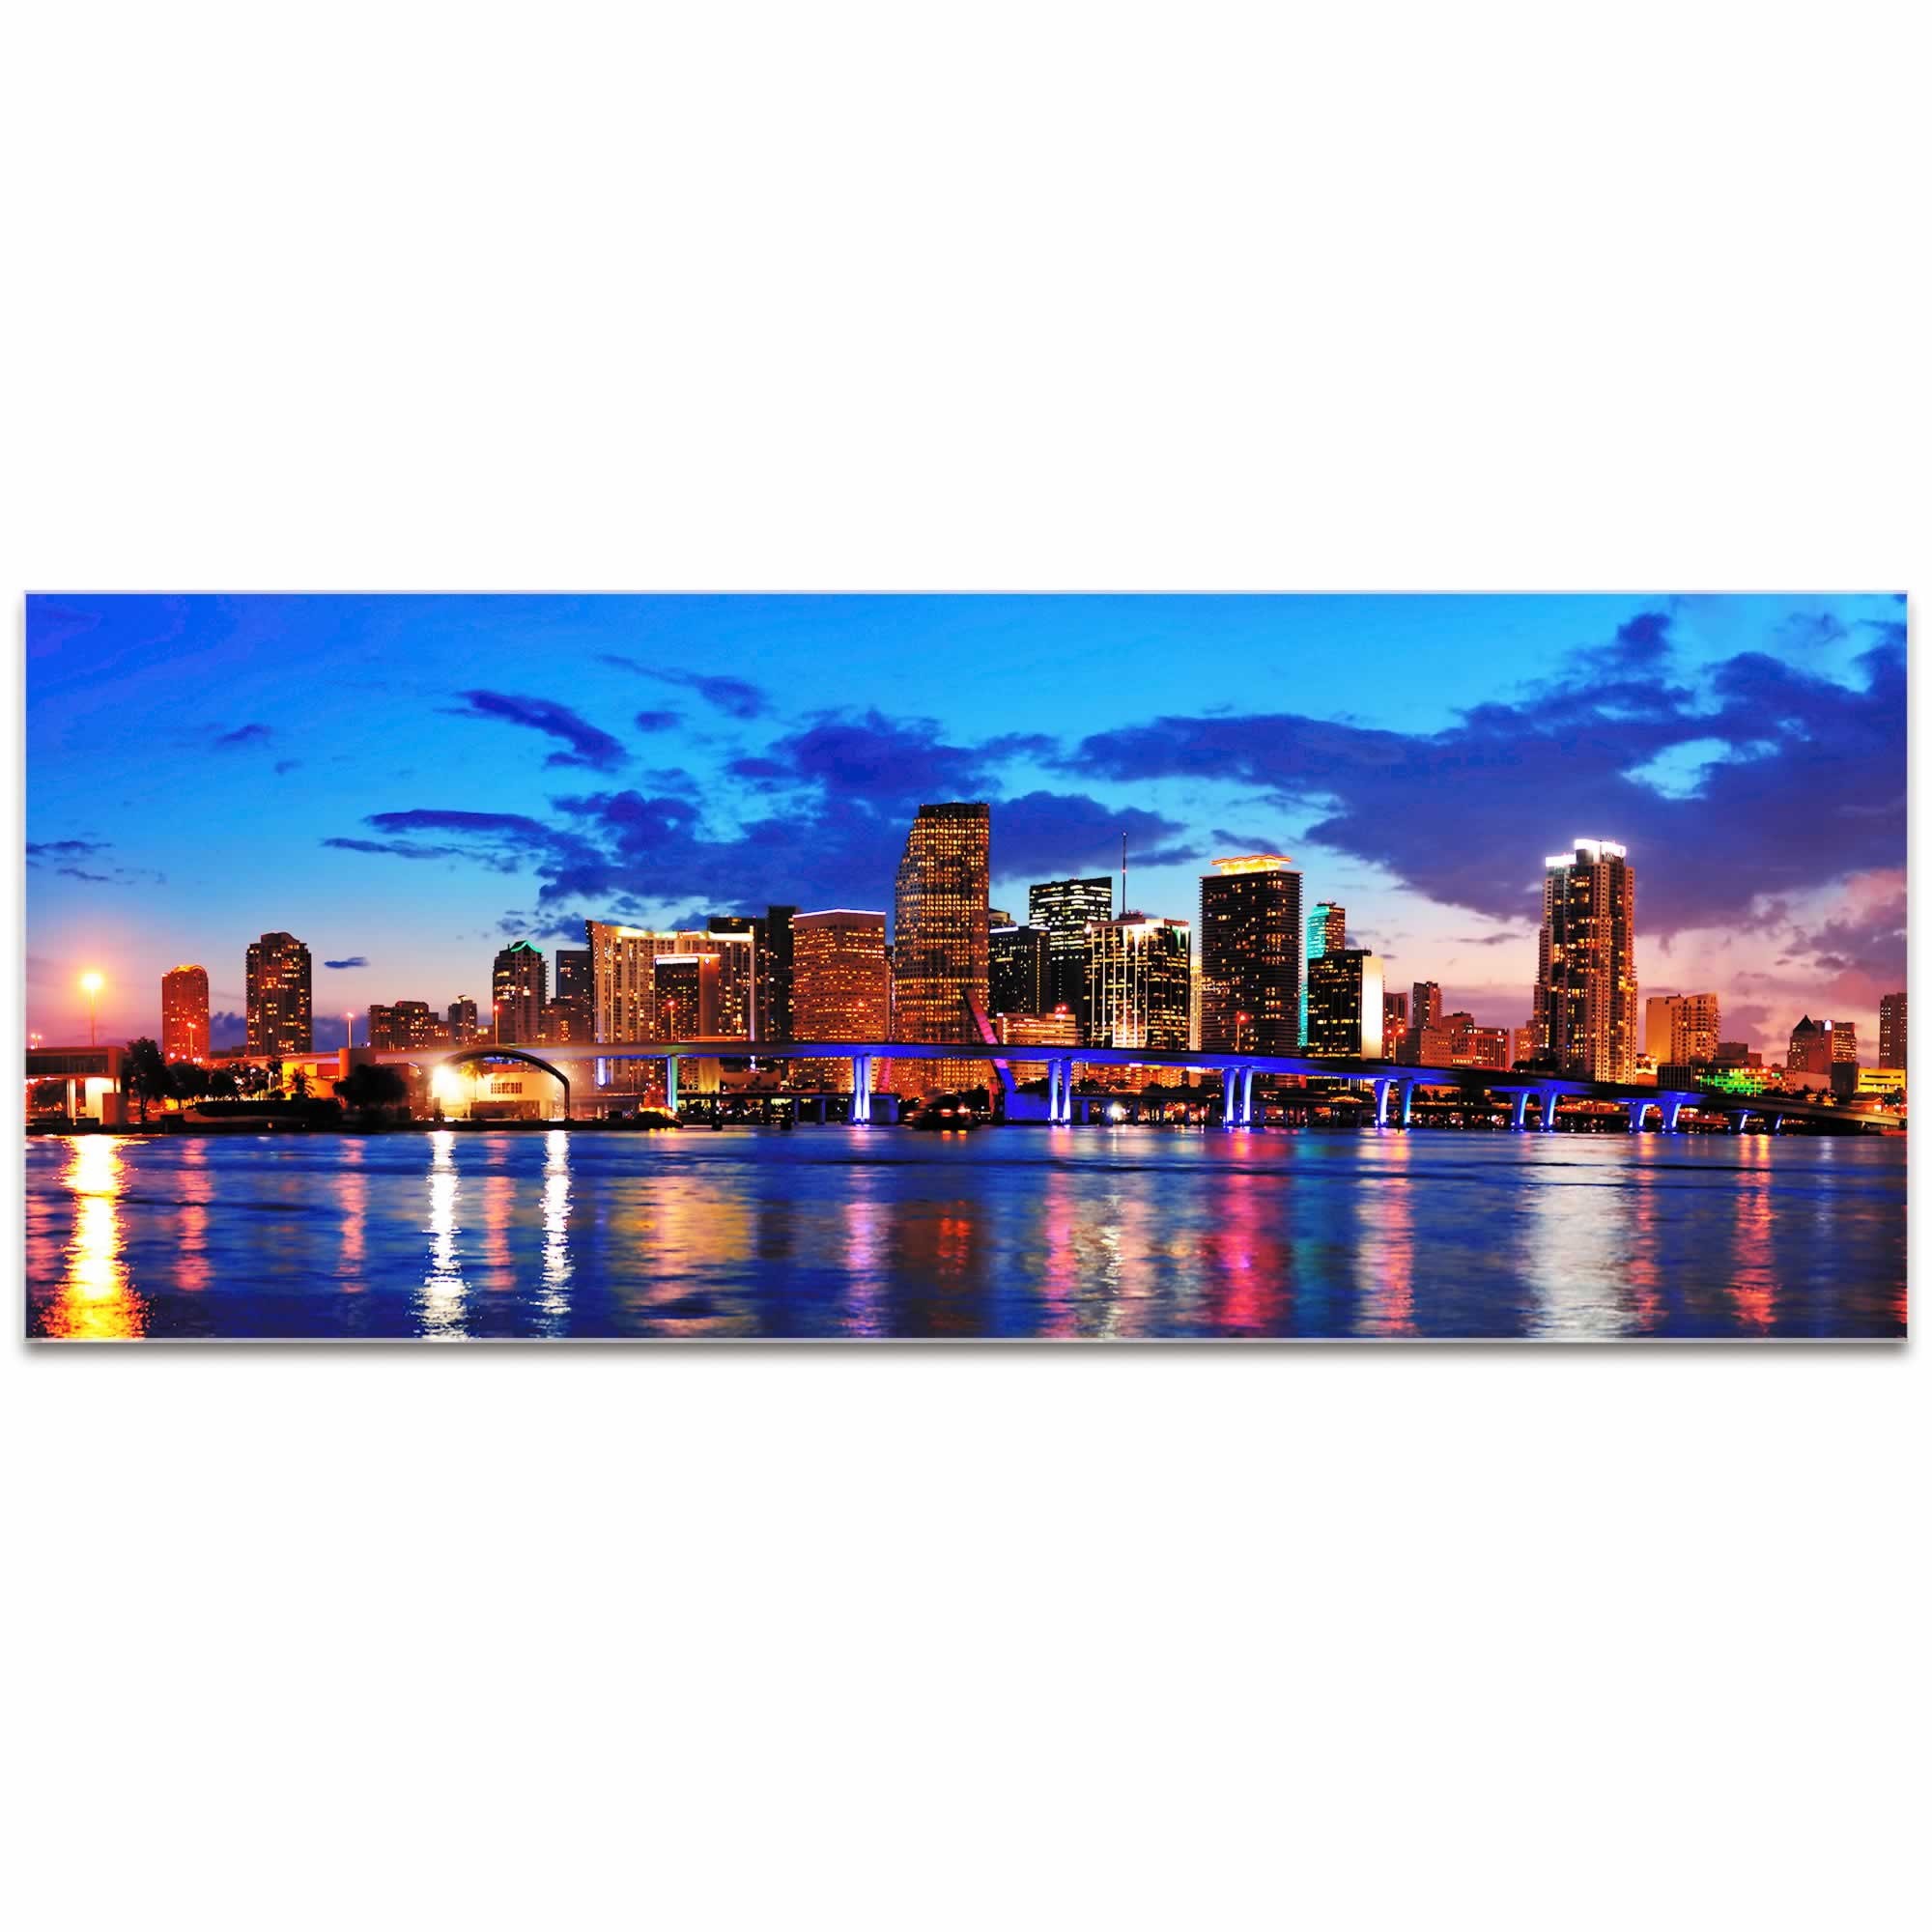 Miami City Skyline - Urban Modern Art, Designer Home Decor, Cityscape Wall Artwork, Trendy Contemporary Art